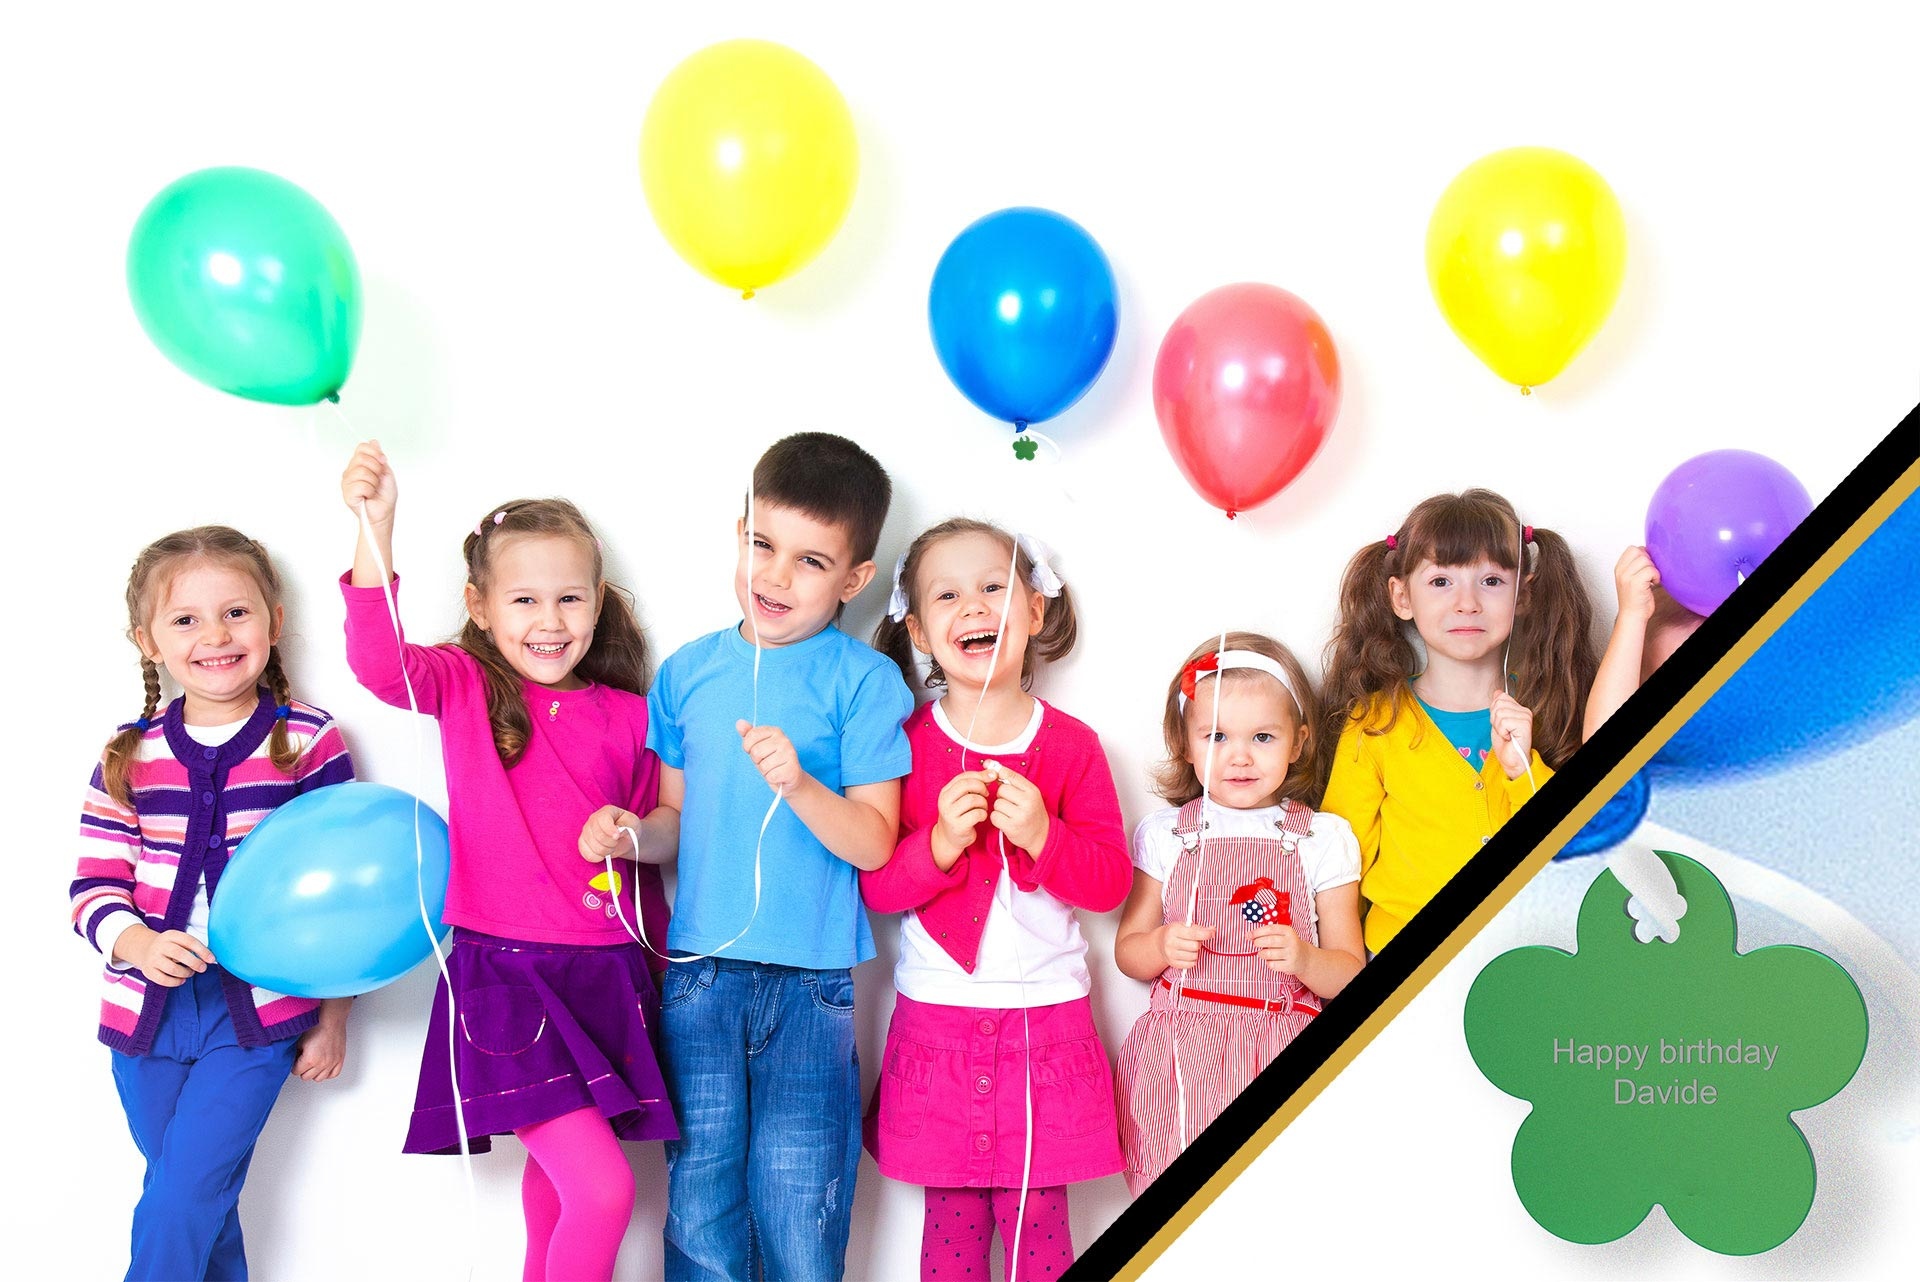 group photo of children holding balloons at a birthday party with a focus on a personalized charm